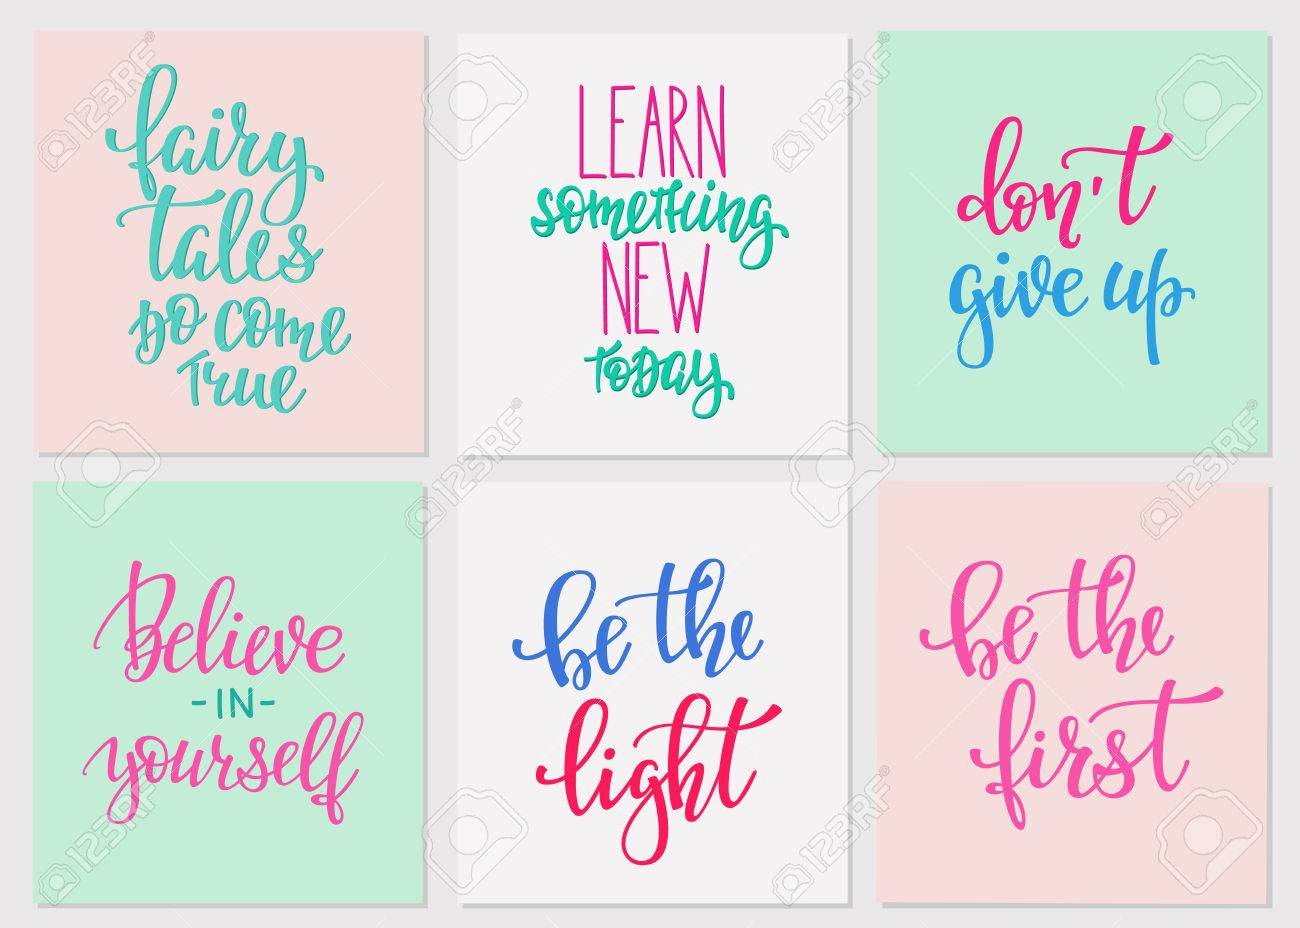 Lettering Vector Postcard Quotes Set Motivational Sweet Cute Royalty Free Cliparts Vectors And Stock Illustration Image 61109006